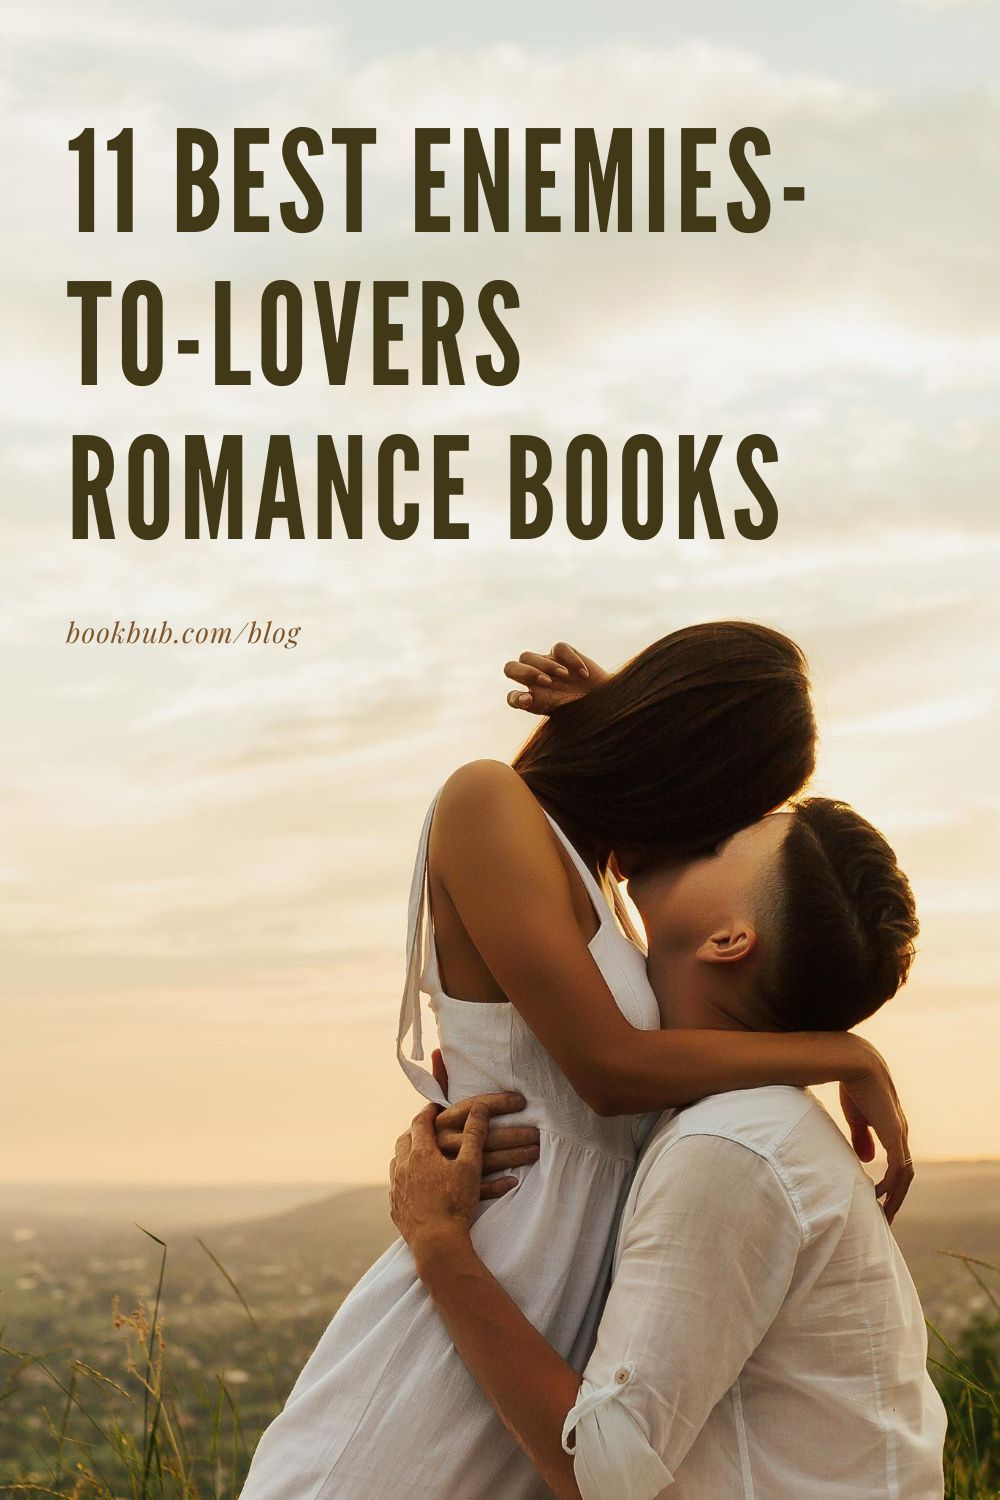 40+ Mm romance books enemies to lovers ideas in 2021